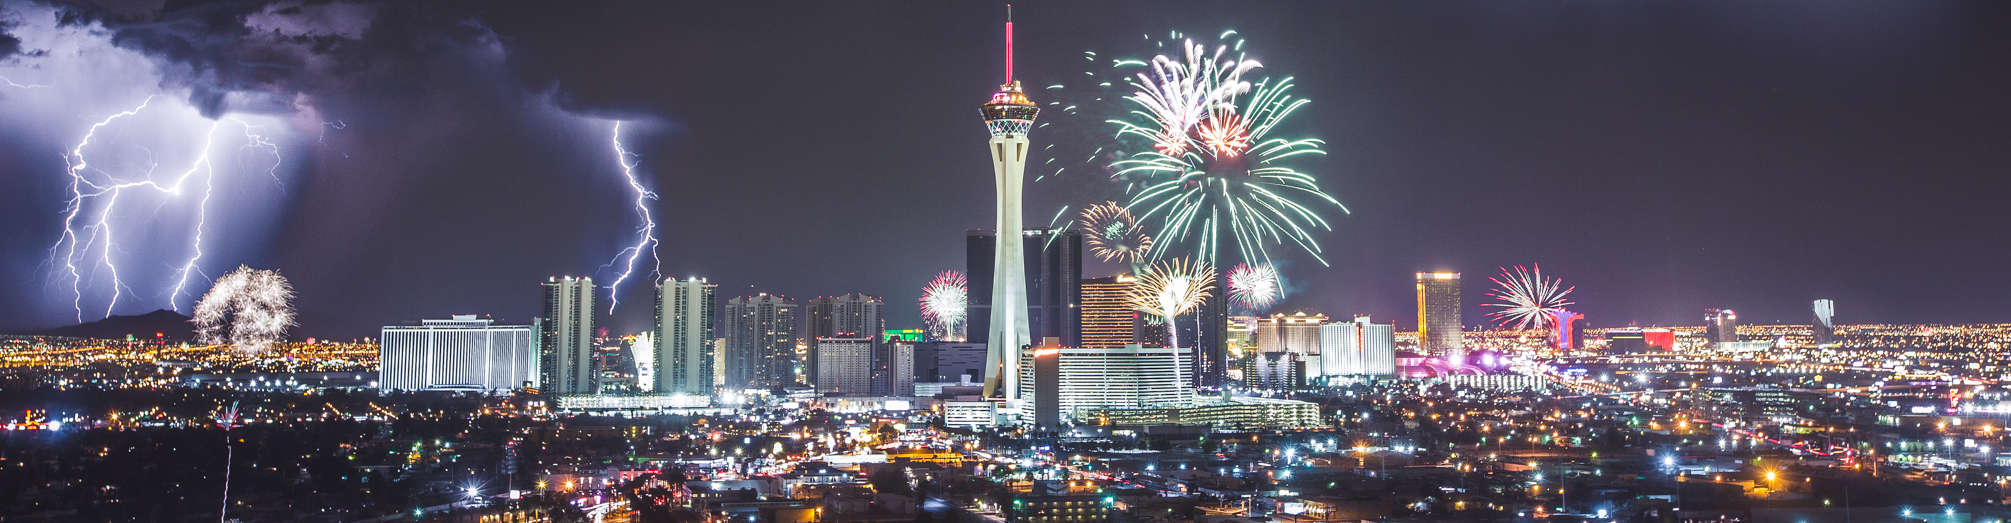 Las Vegas is shaping up to be the hottest destination in the country for 4th July Weekend. There are plenty of DJs and big-name recording artists performing at various nightclubs and dayclubs in Sin City. Here is a list of some of the events that will be taking place 4th of July weekend.